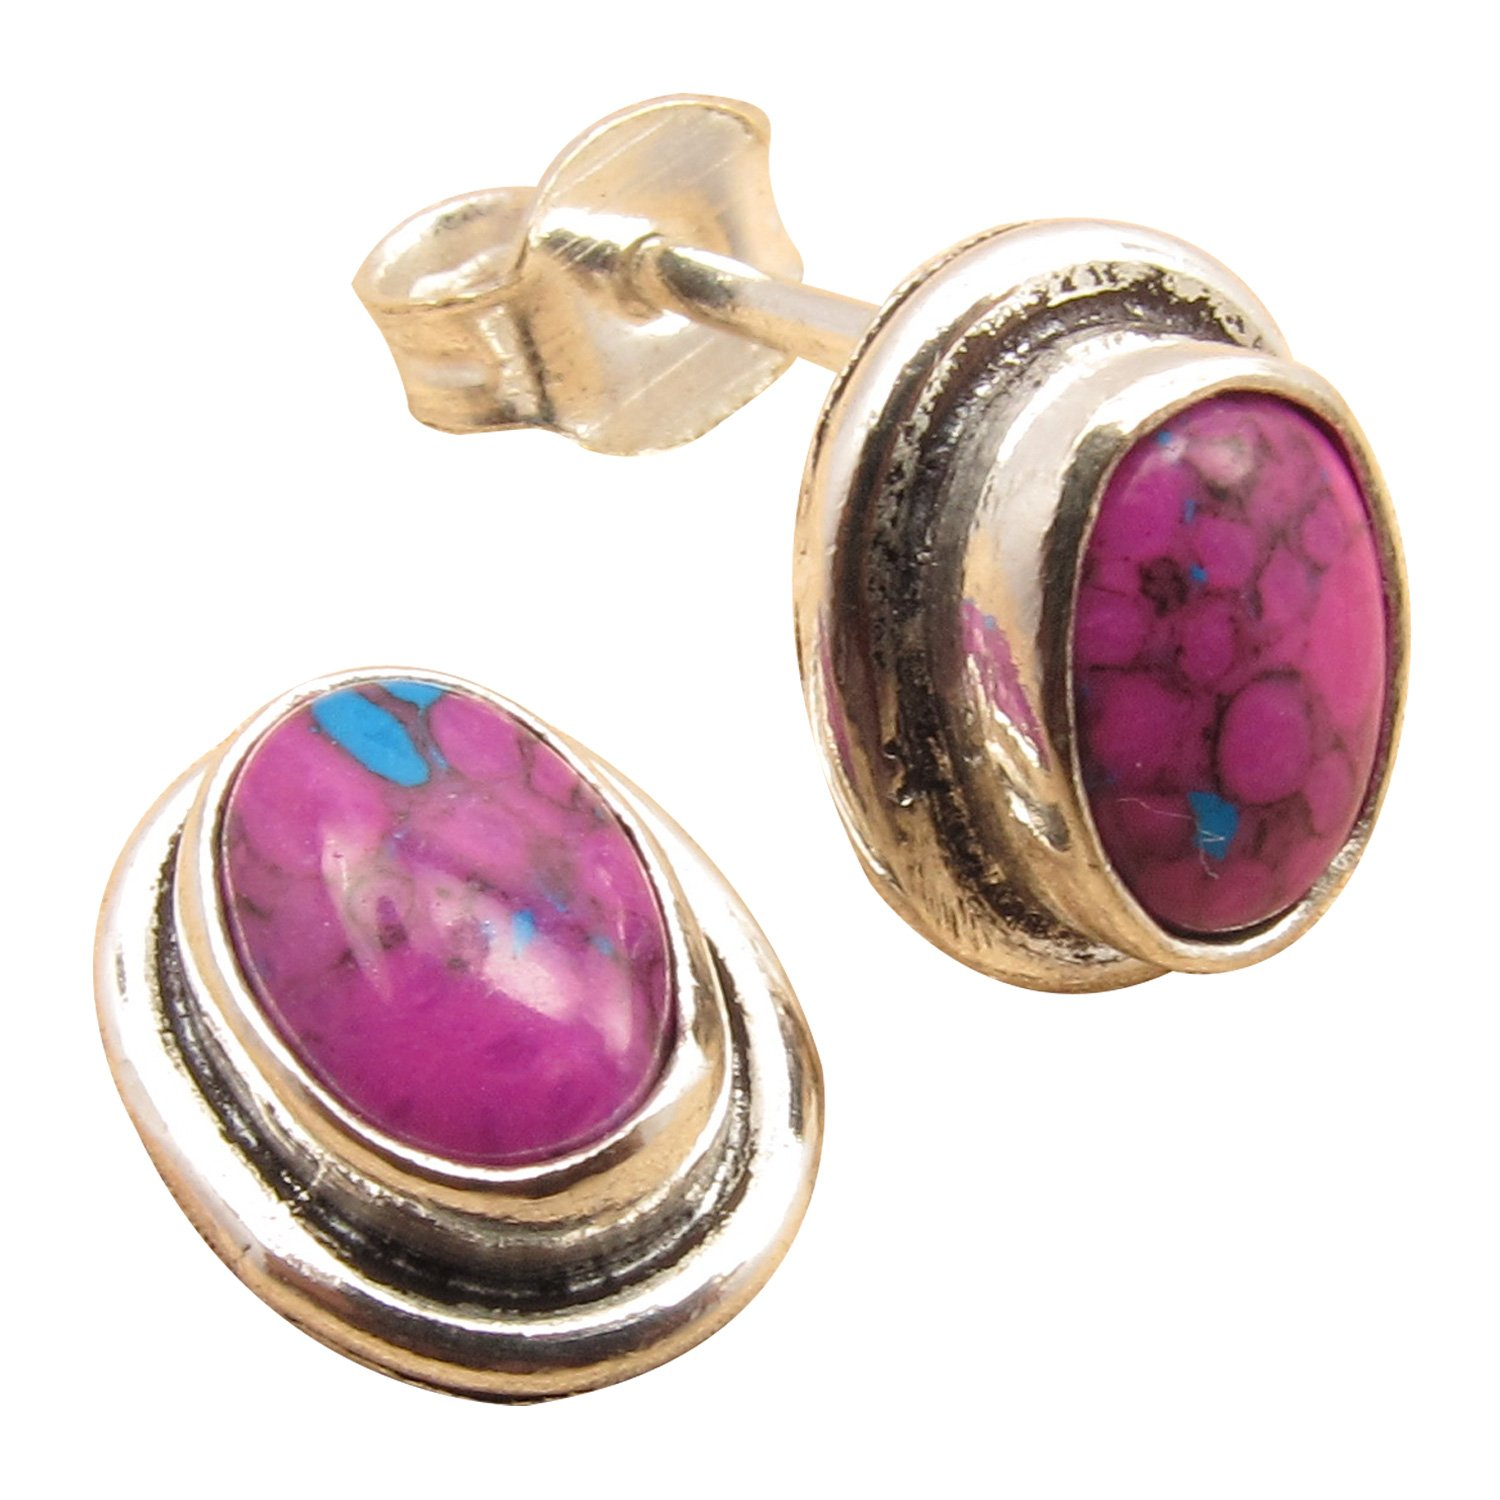 8de3fc5d96a2f Bestseller Deco Stud ! 925 Sterling Silver Plated Online Fashion Jewelry  Store ! Authentic Stone